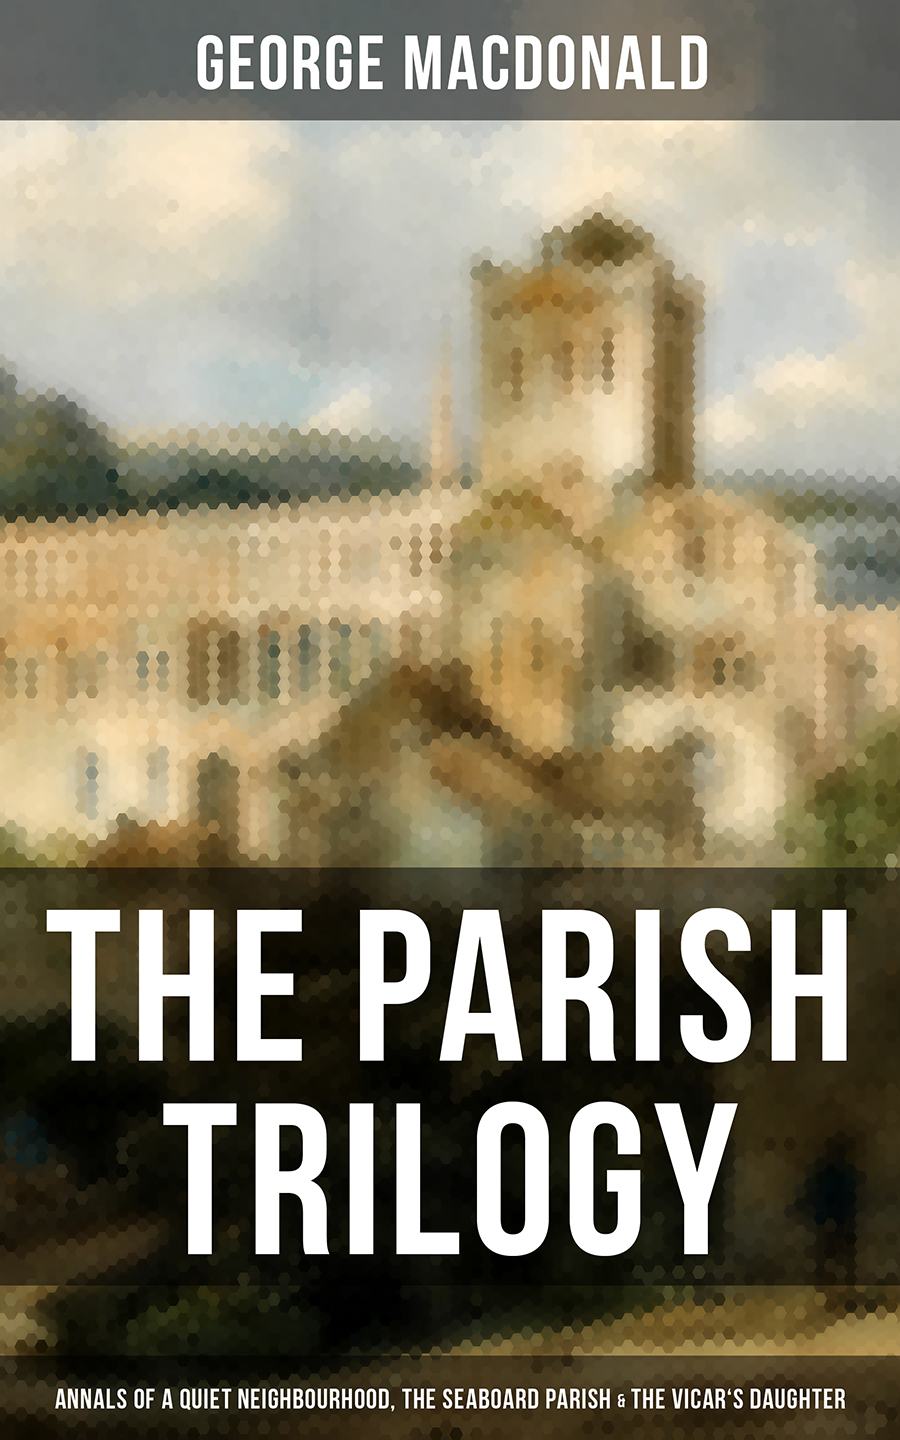 George MacDonald THE PARISH TRILOGY - Annals of a Quiet Neighbourhood, The Seaboard Parish & The Vicar's Daughter j parish james parish stelle the american watchmaker and jeweler